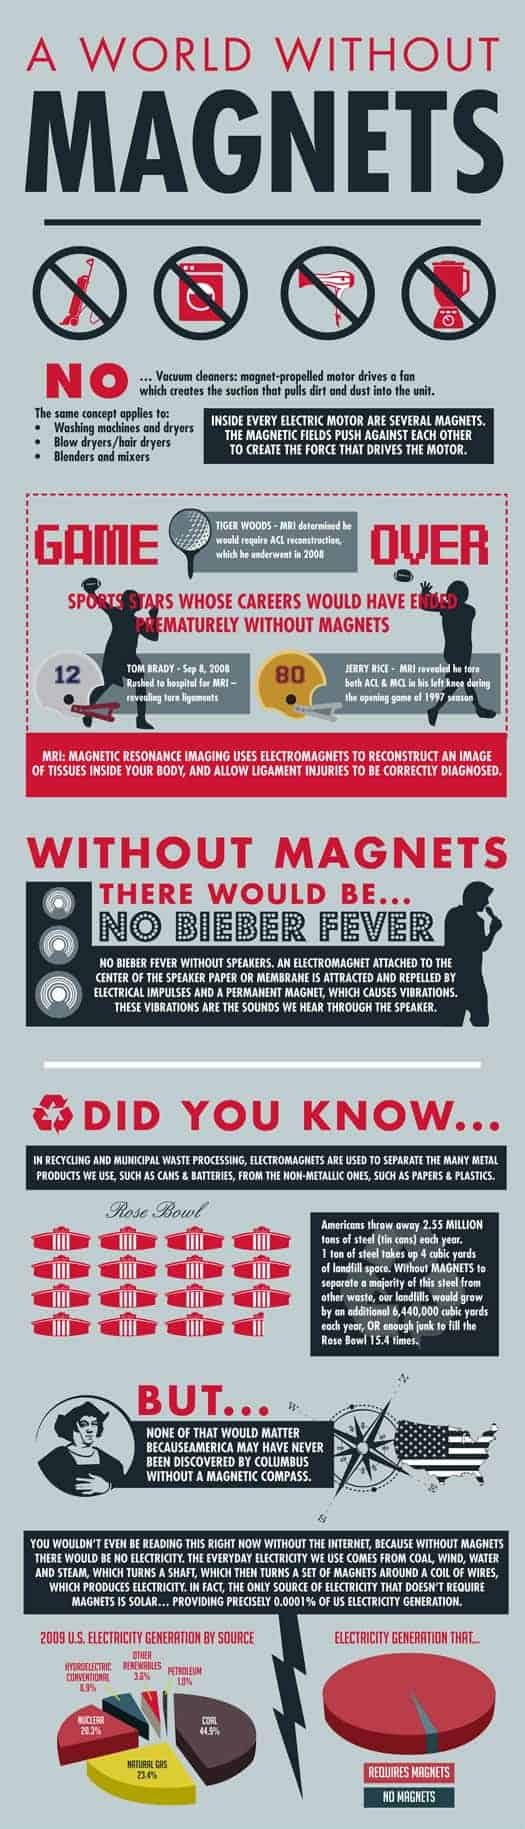 A World Without Magnets